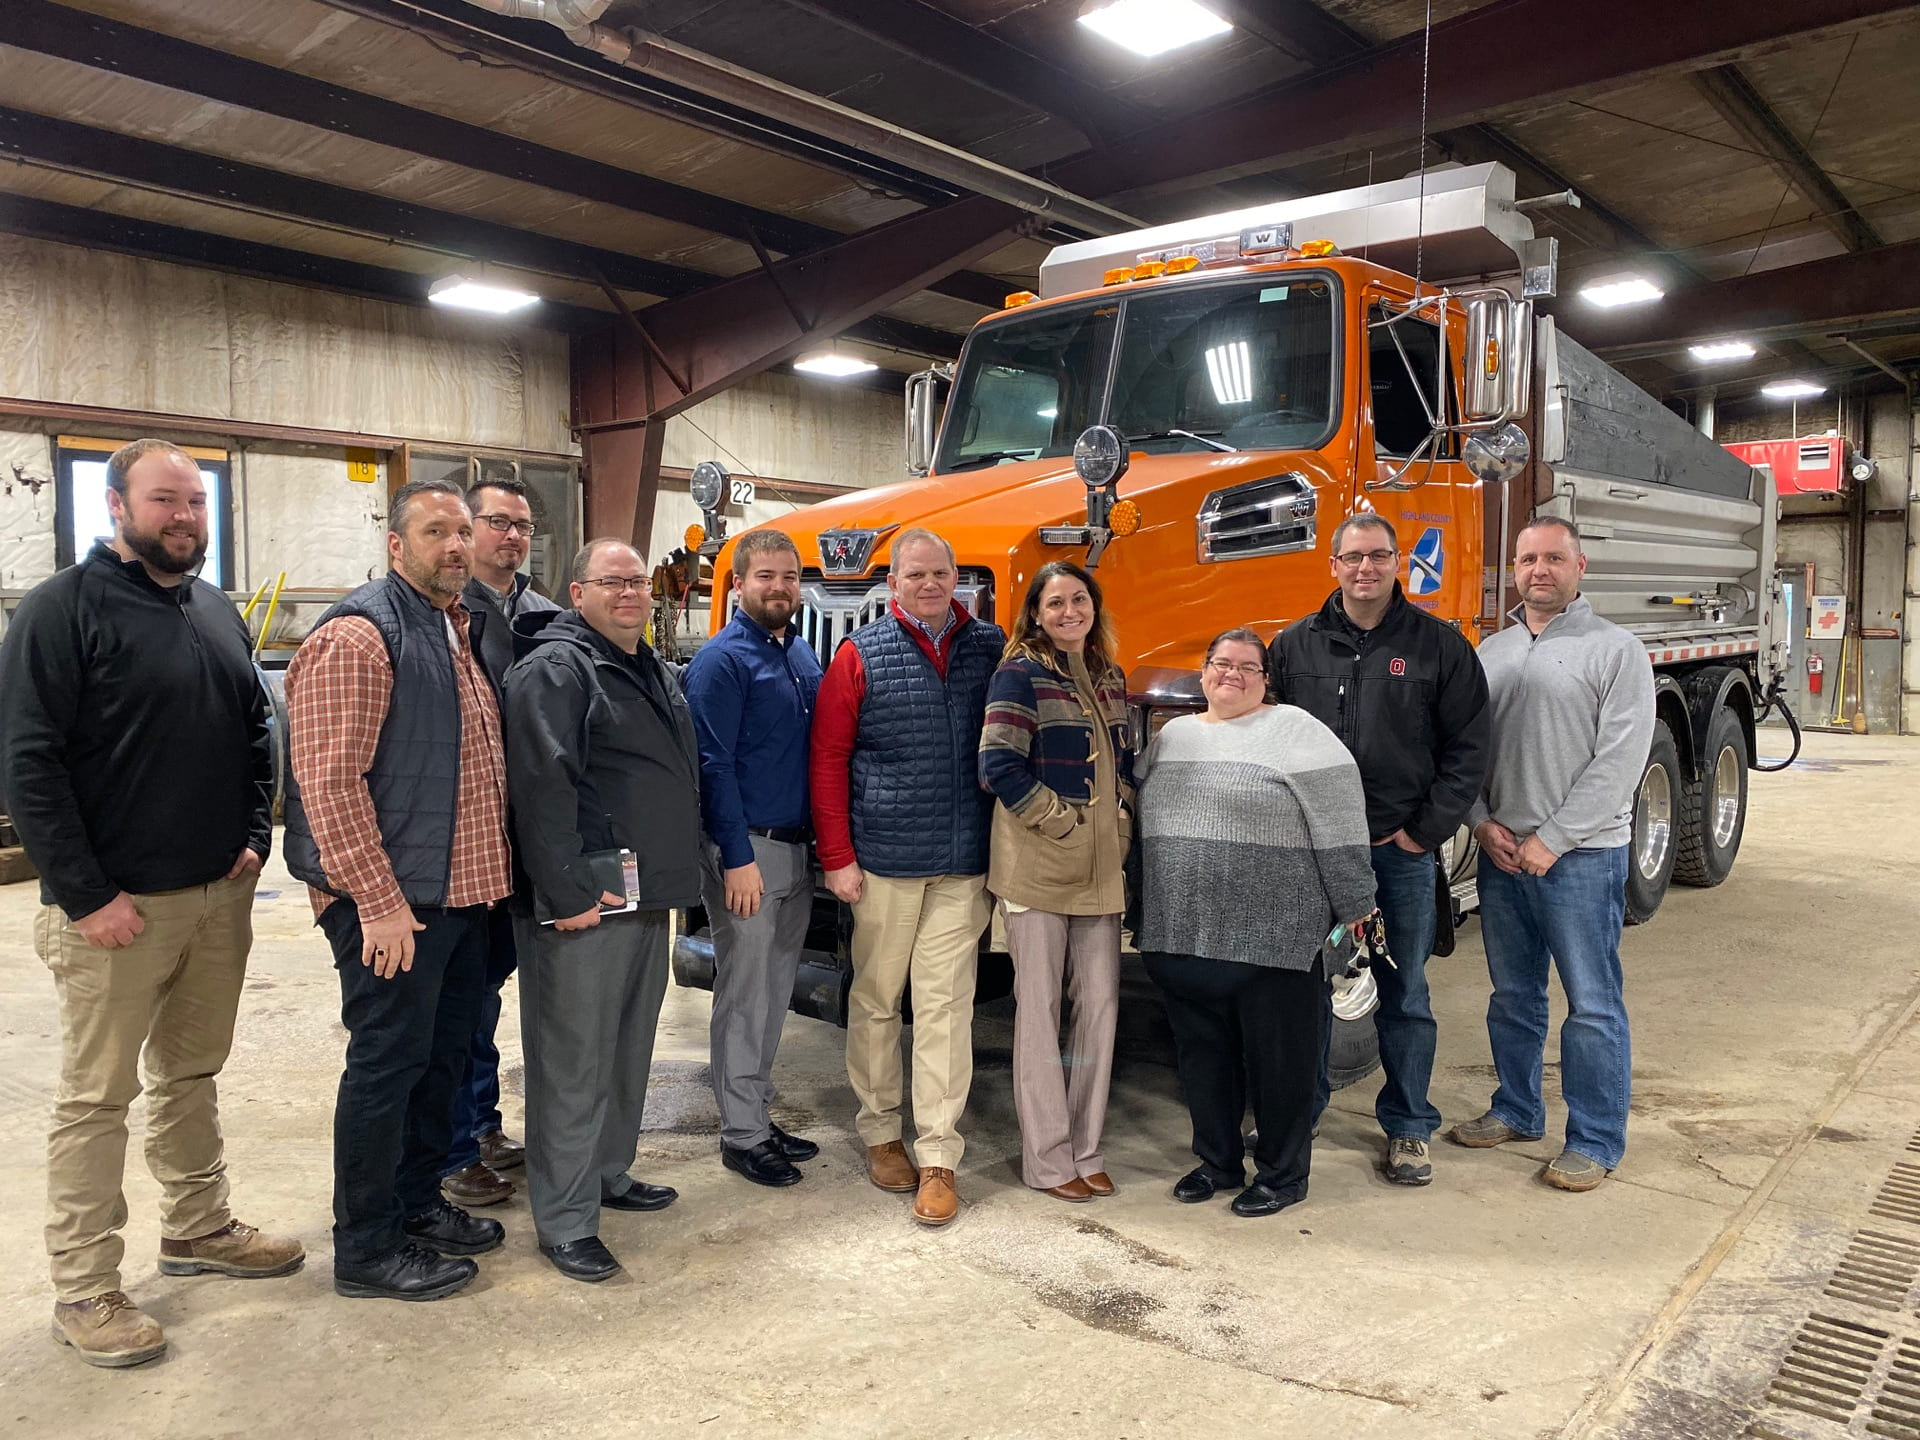 Left to right: Christian Dunlap, Bill Davis, Mel McKenzie, Jim Tomko, Jacob Alexander, Scott Lewis, Courtney Gallimore, Amanda Hall, Blaine Williams, and Highland County Engineer Chris Fauber in the shop at the Engineer's Office.